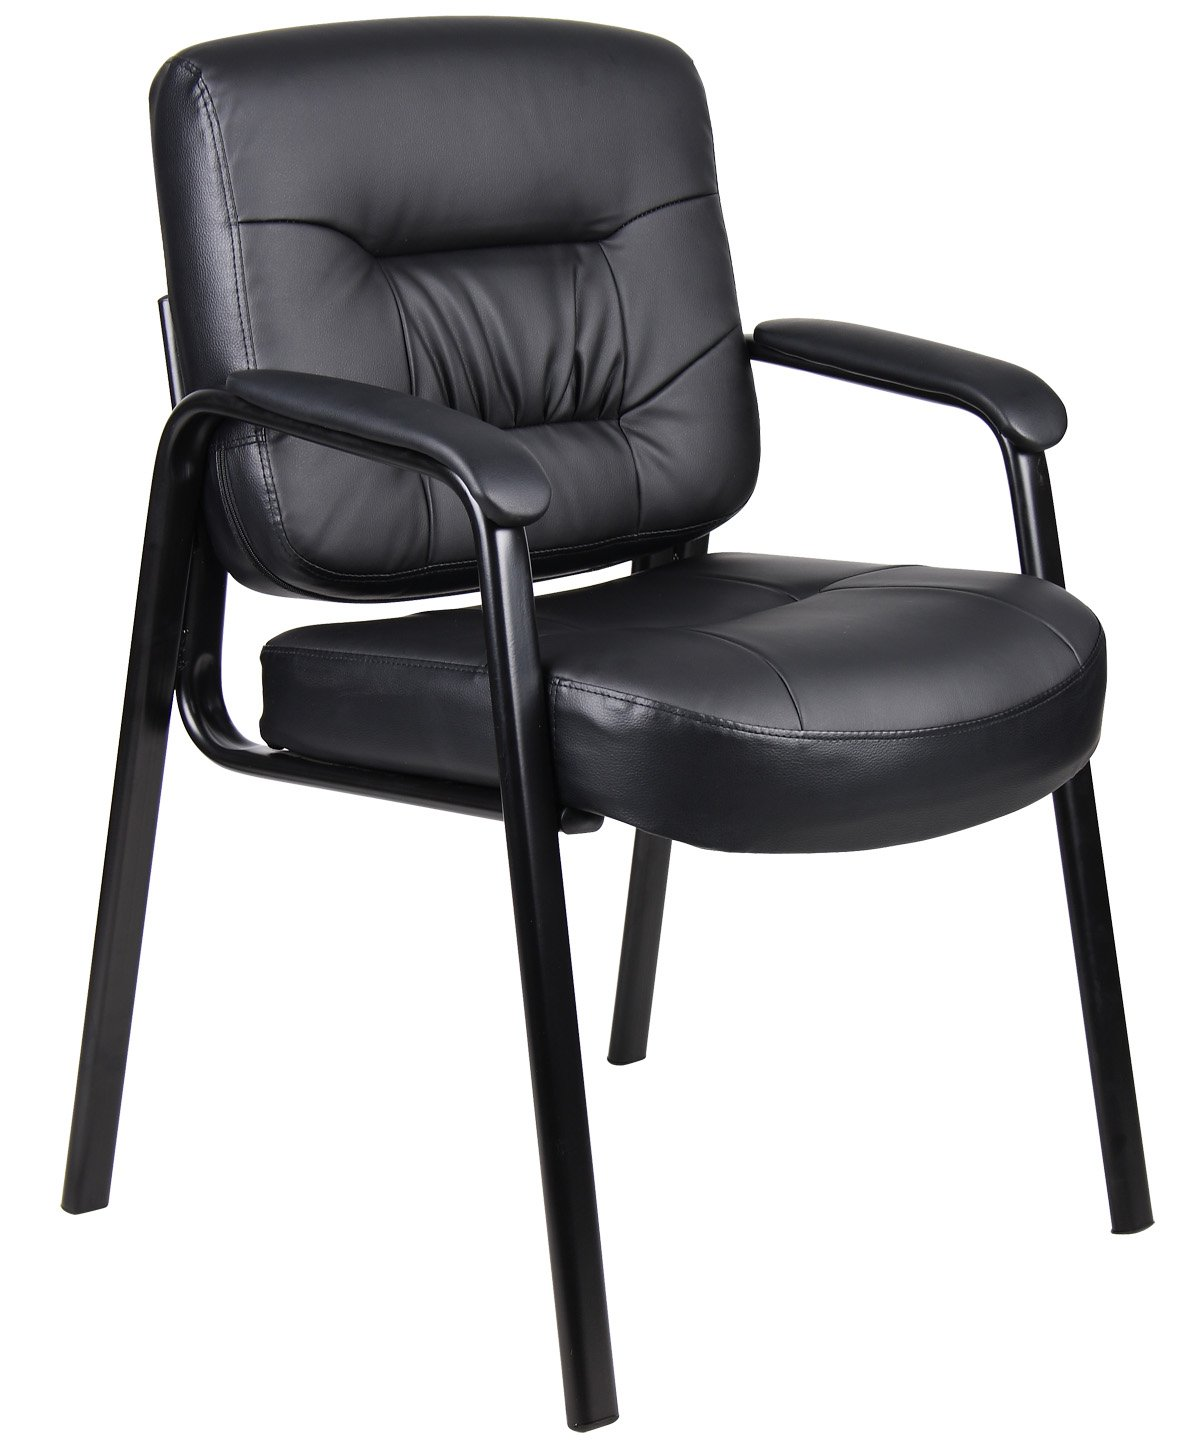 arms leather uae in online visitor guest italian chair modern furniture fleifel cantilever lebanon chairs with beirut orig